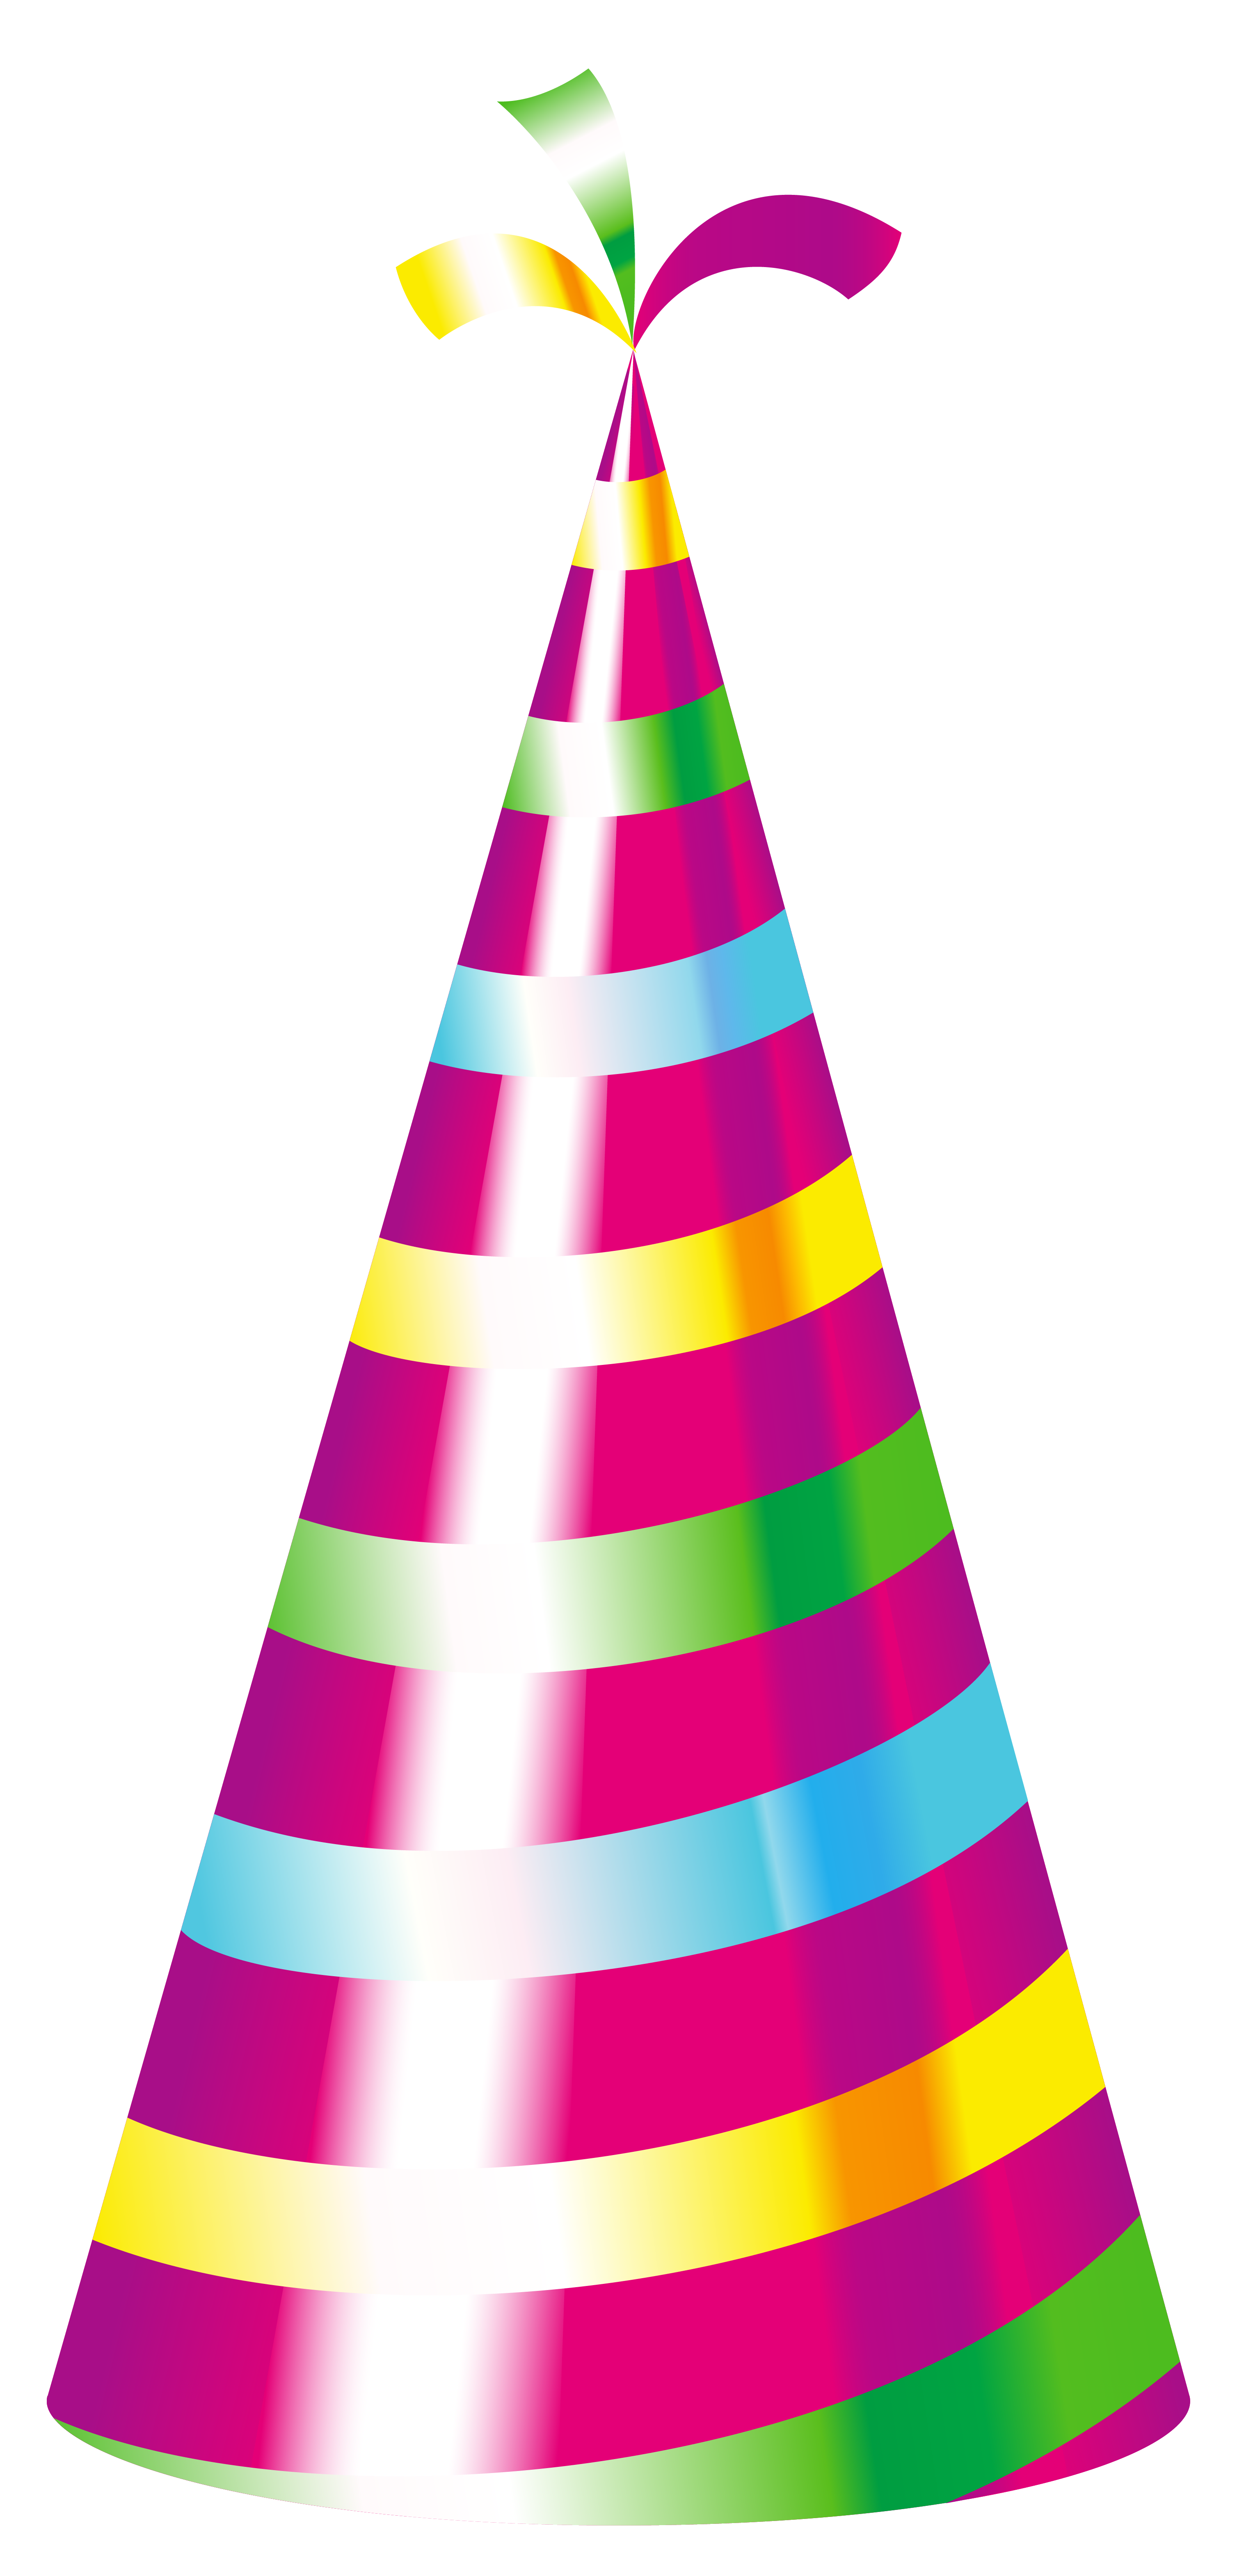 Baseball party clipart graphic free download Birthday Hat PNG Transparent Birthday Hat.PNG Images. | PlusPNG graphic free download